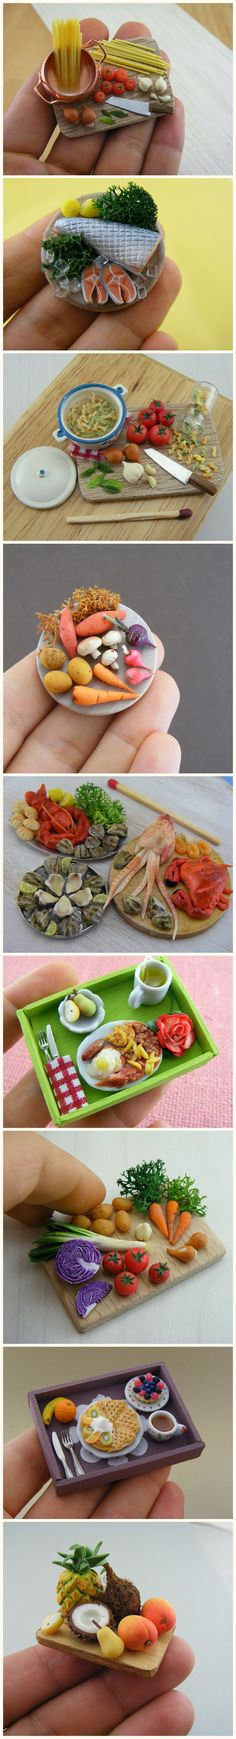 Mouth-Watering Miniature Food Sculptures by Shay Aaron